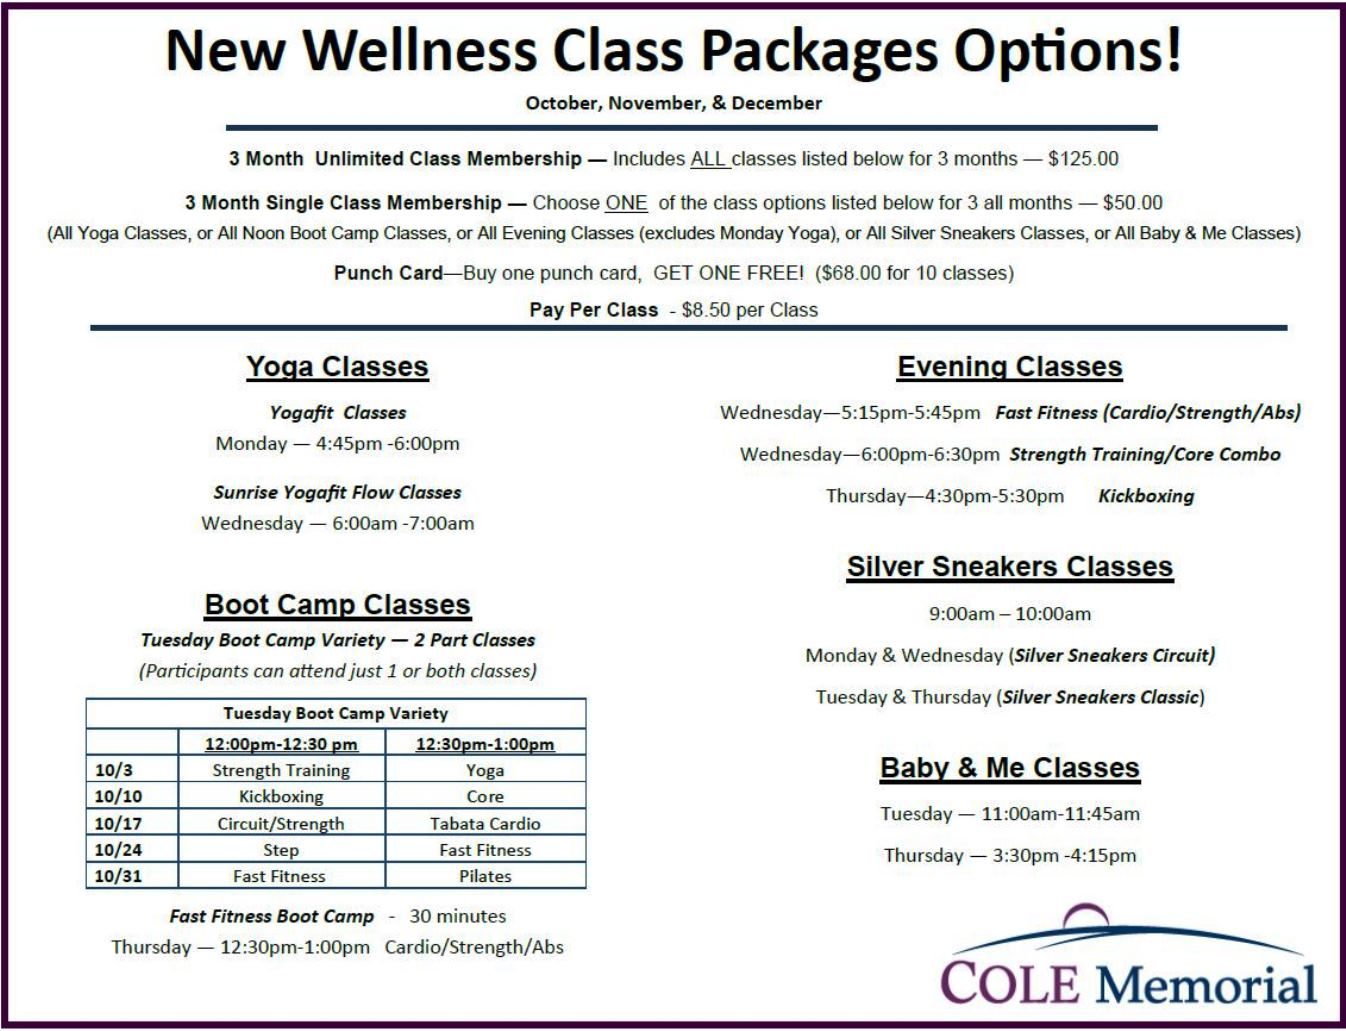 New Wellness Class Package Options